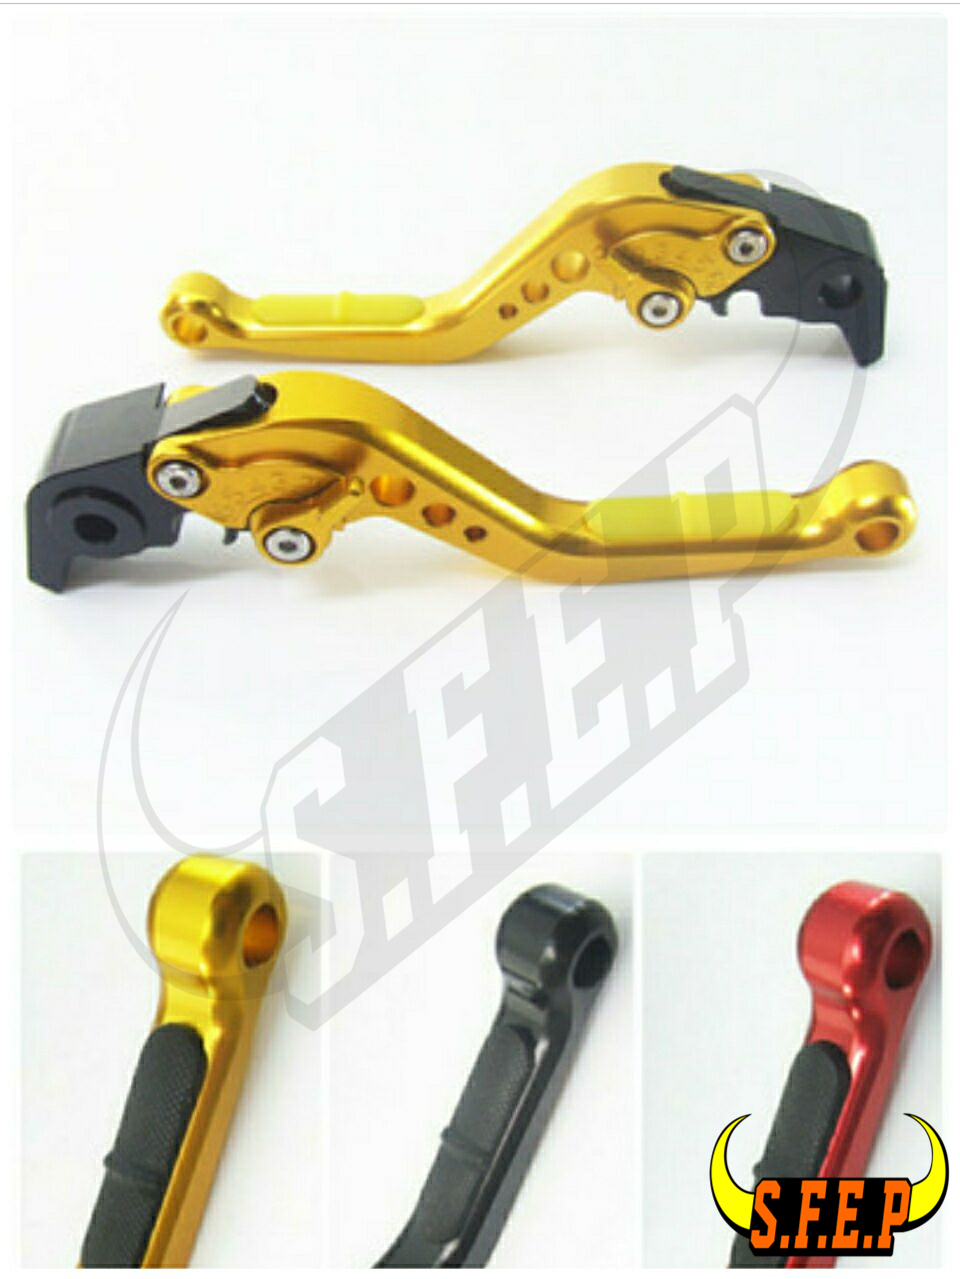 CNC Adjustable Motorcycle Brake and Clutch Levers with Anti-Slip For Aprilia TUONO V4R/Factory 2011-2016